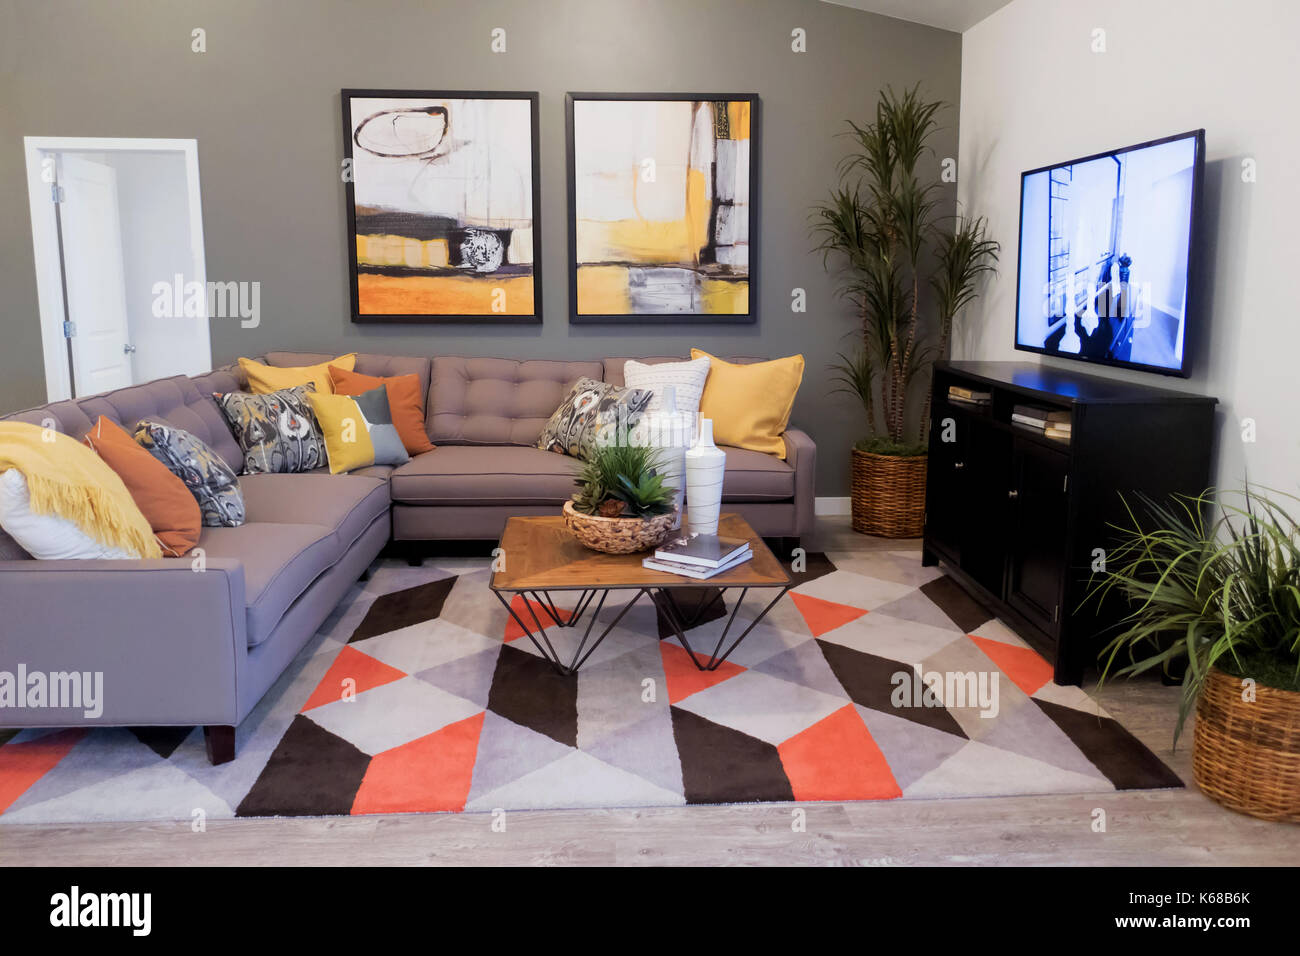 Wondrous A Gray Sectional Couch On A Colorful Rug Near A Tv Stand And Creativecarmelina Interior Chair Design Creativecarmelinacom